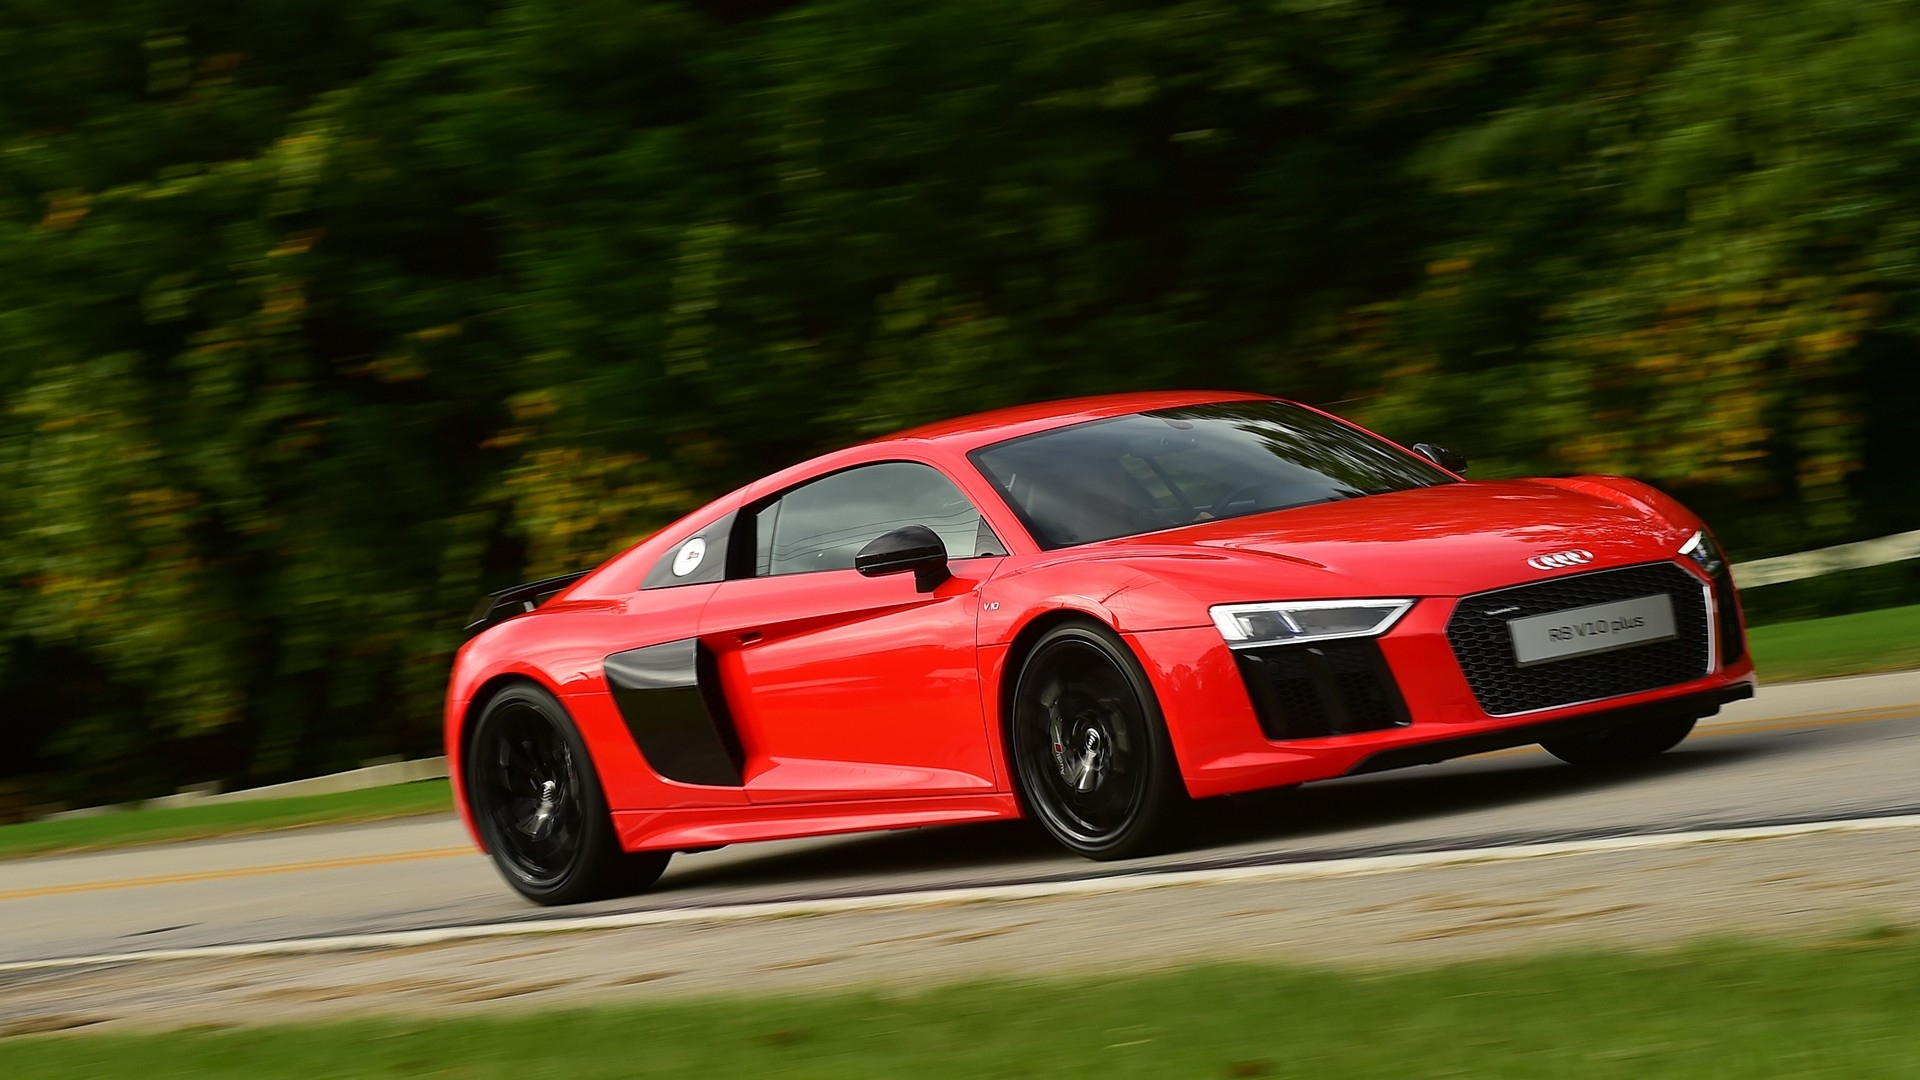 audi-r-sport-rain-race-Audi-Of-America-Announces-Pricing-For-The-All-New-R-The-wallpaper-wpc5802358